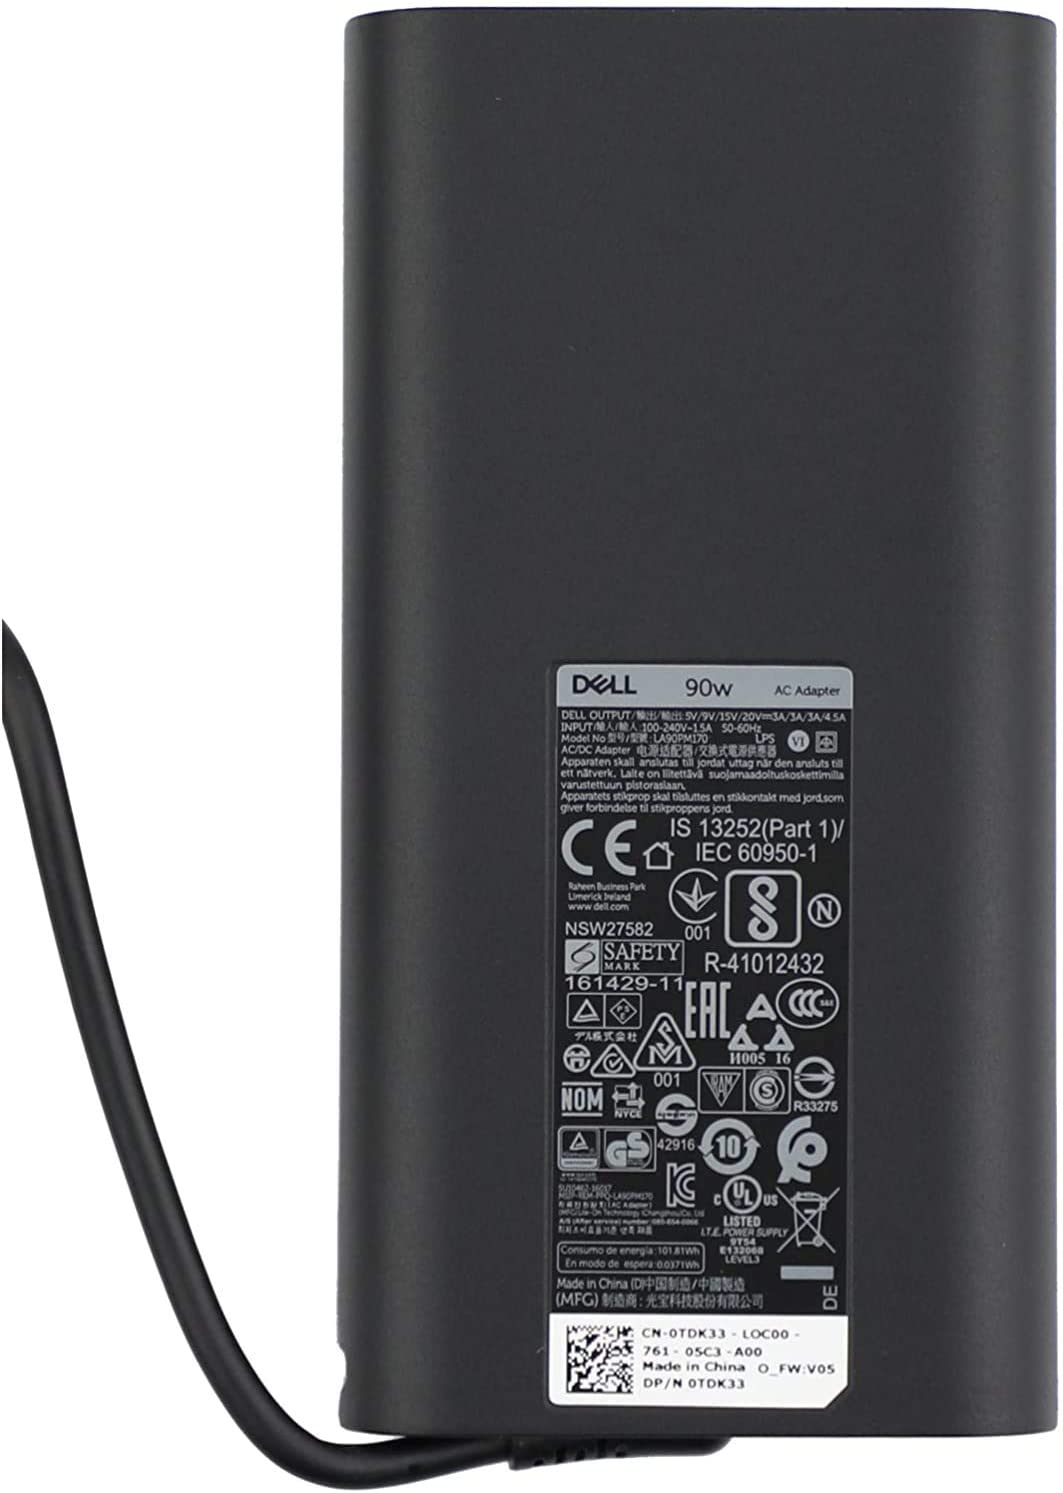 New Laptop Charger 90W watt USB Type C(USB-C) AC Power Adapter Include Power Cord for Dell XPS 13,Precision 3540,Latitude 3400,3500, 5289,5300 2in1,7400 2in1,7300, 7390 2in1, 7200 2in1,5400,0TDK33